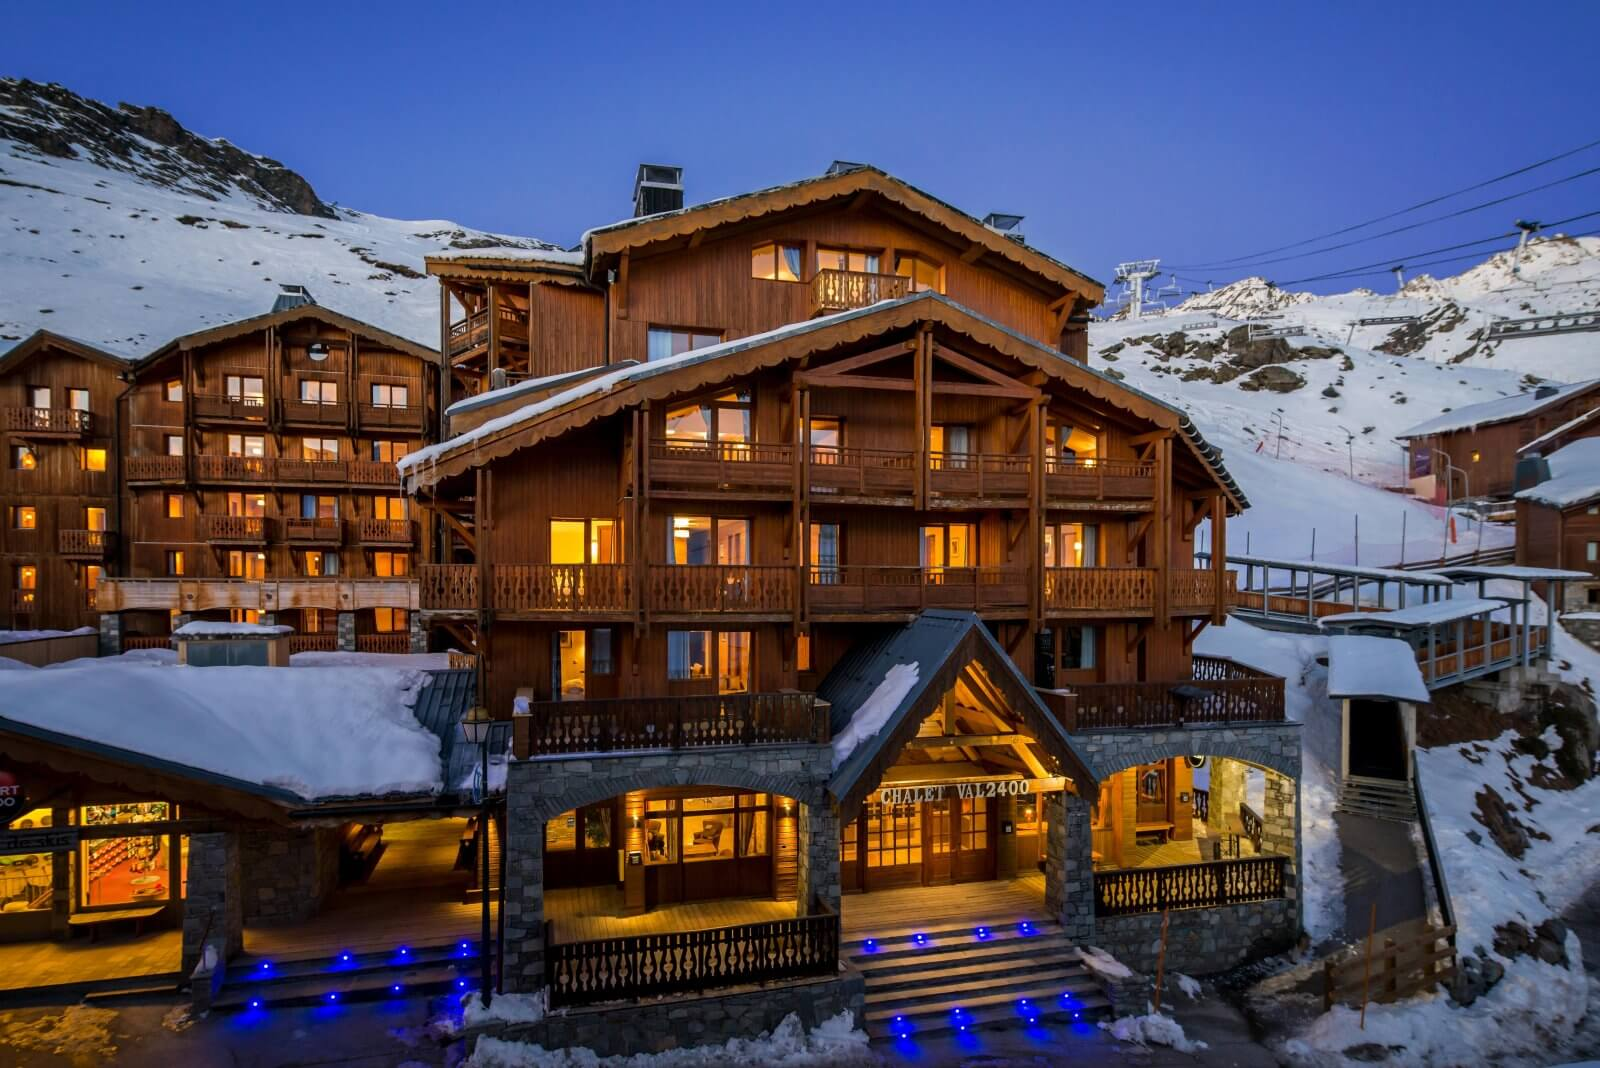 Chalet Val2400 in Val Thorens